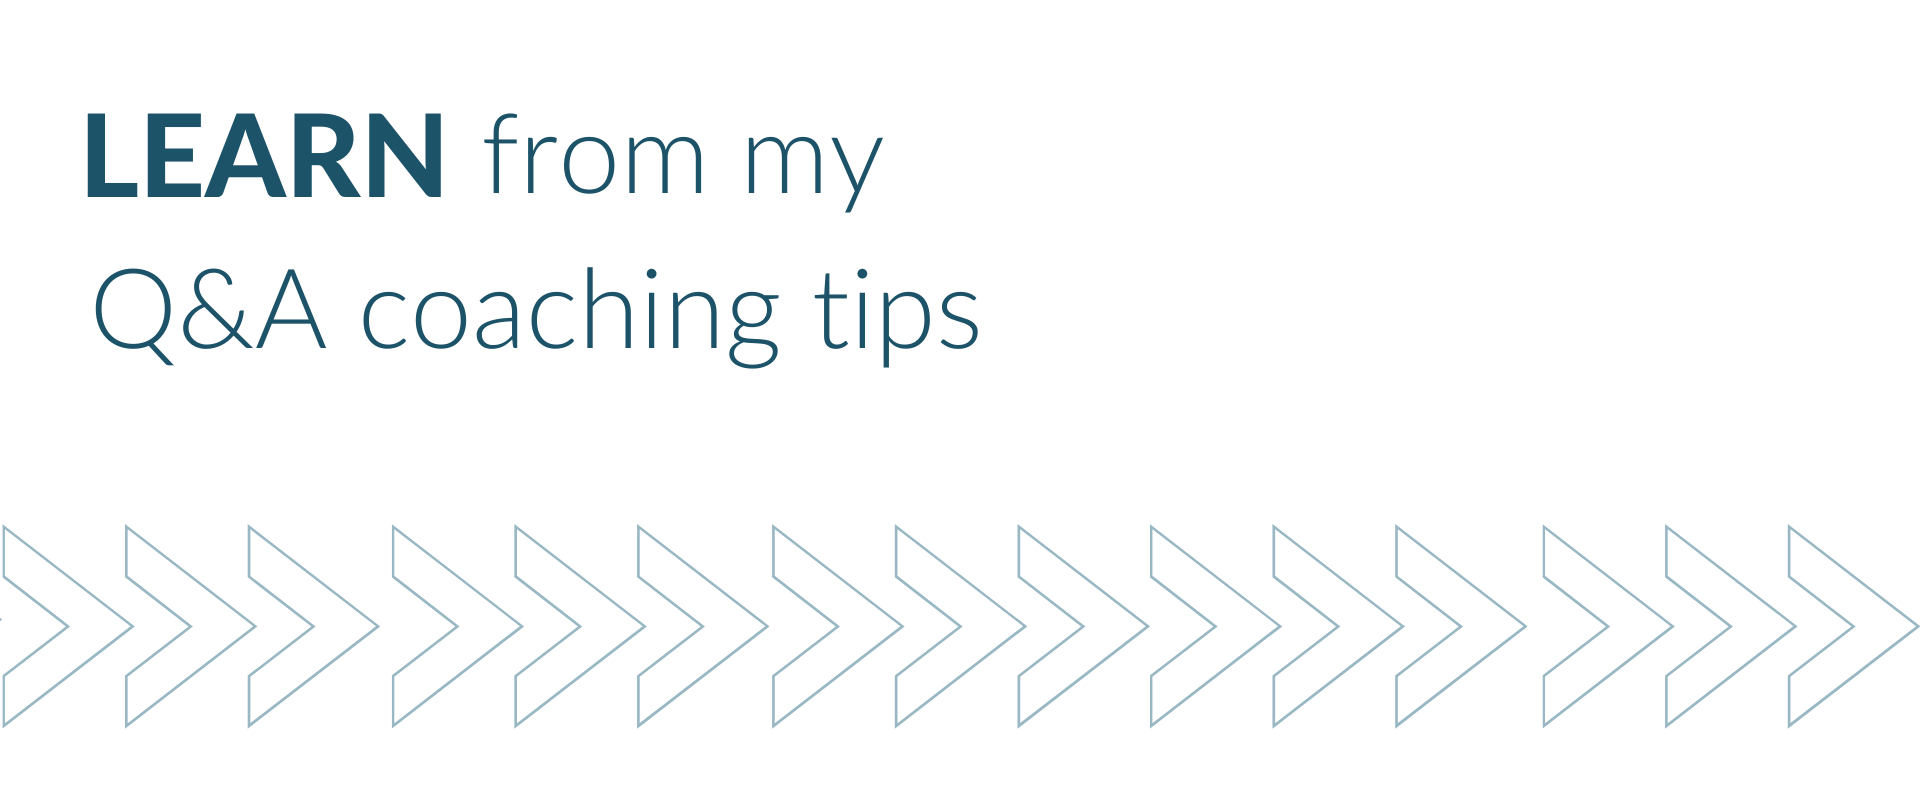 Learn from my Q&A coaching tips